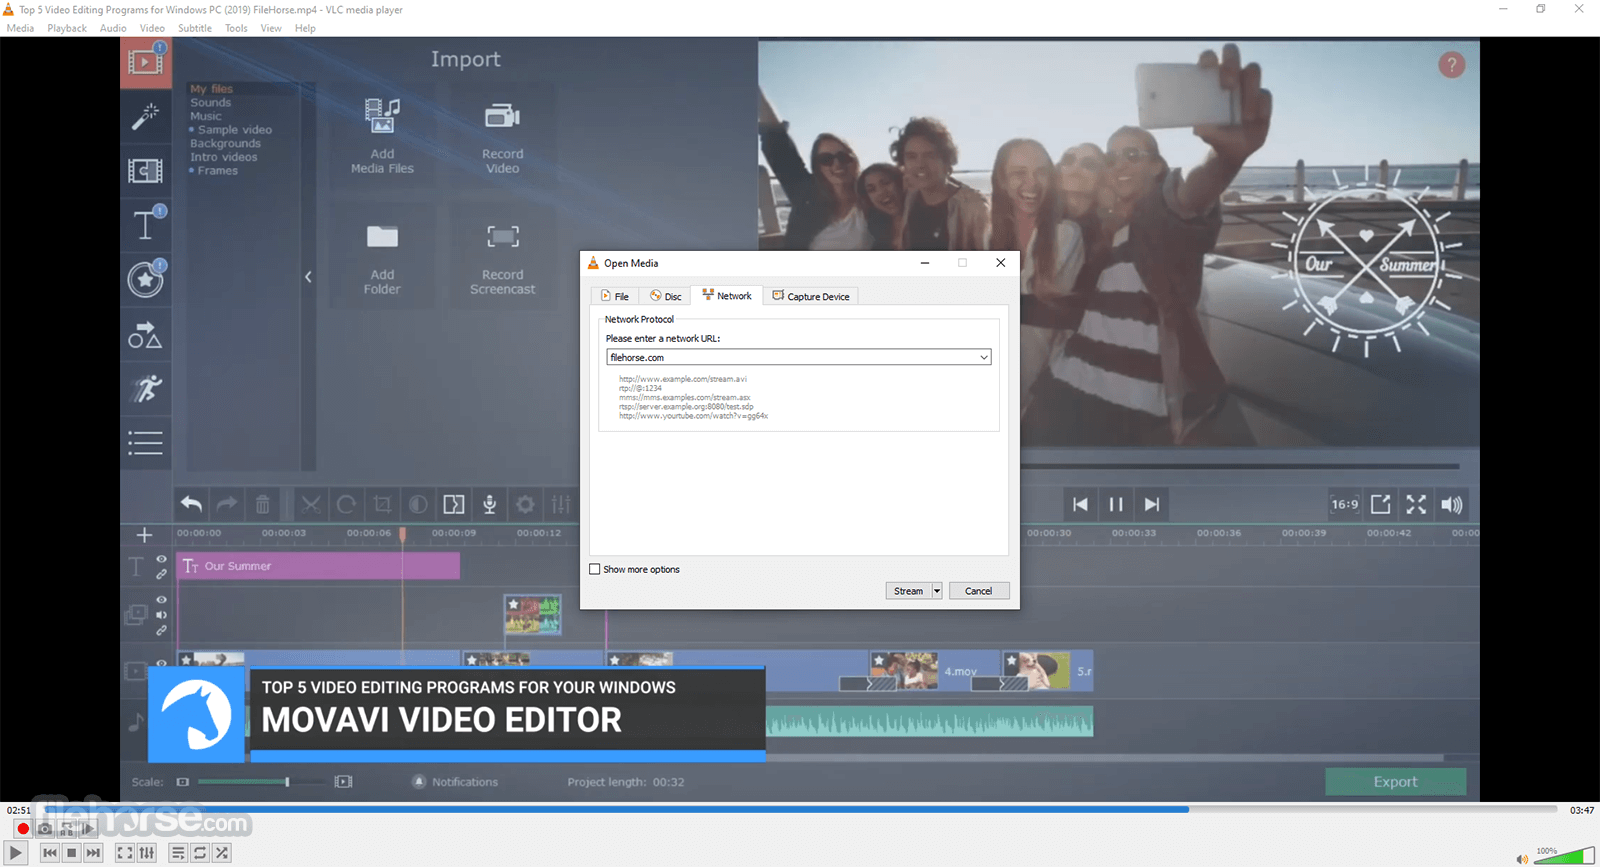 VLC Media Player 2.1.3 (32-bit) Screenshot 3